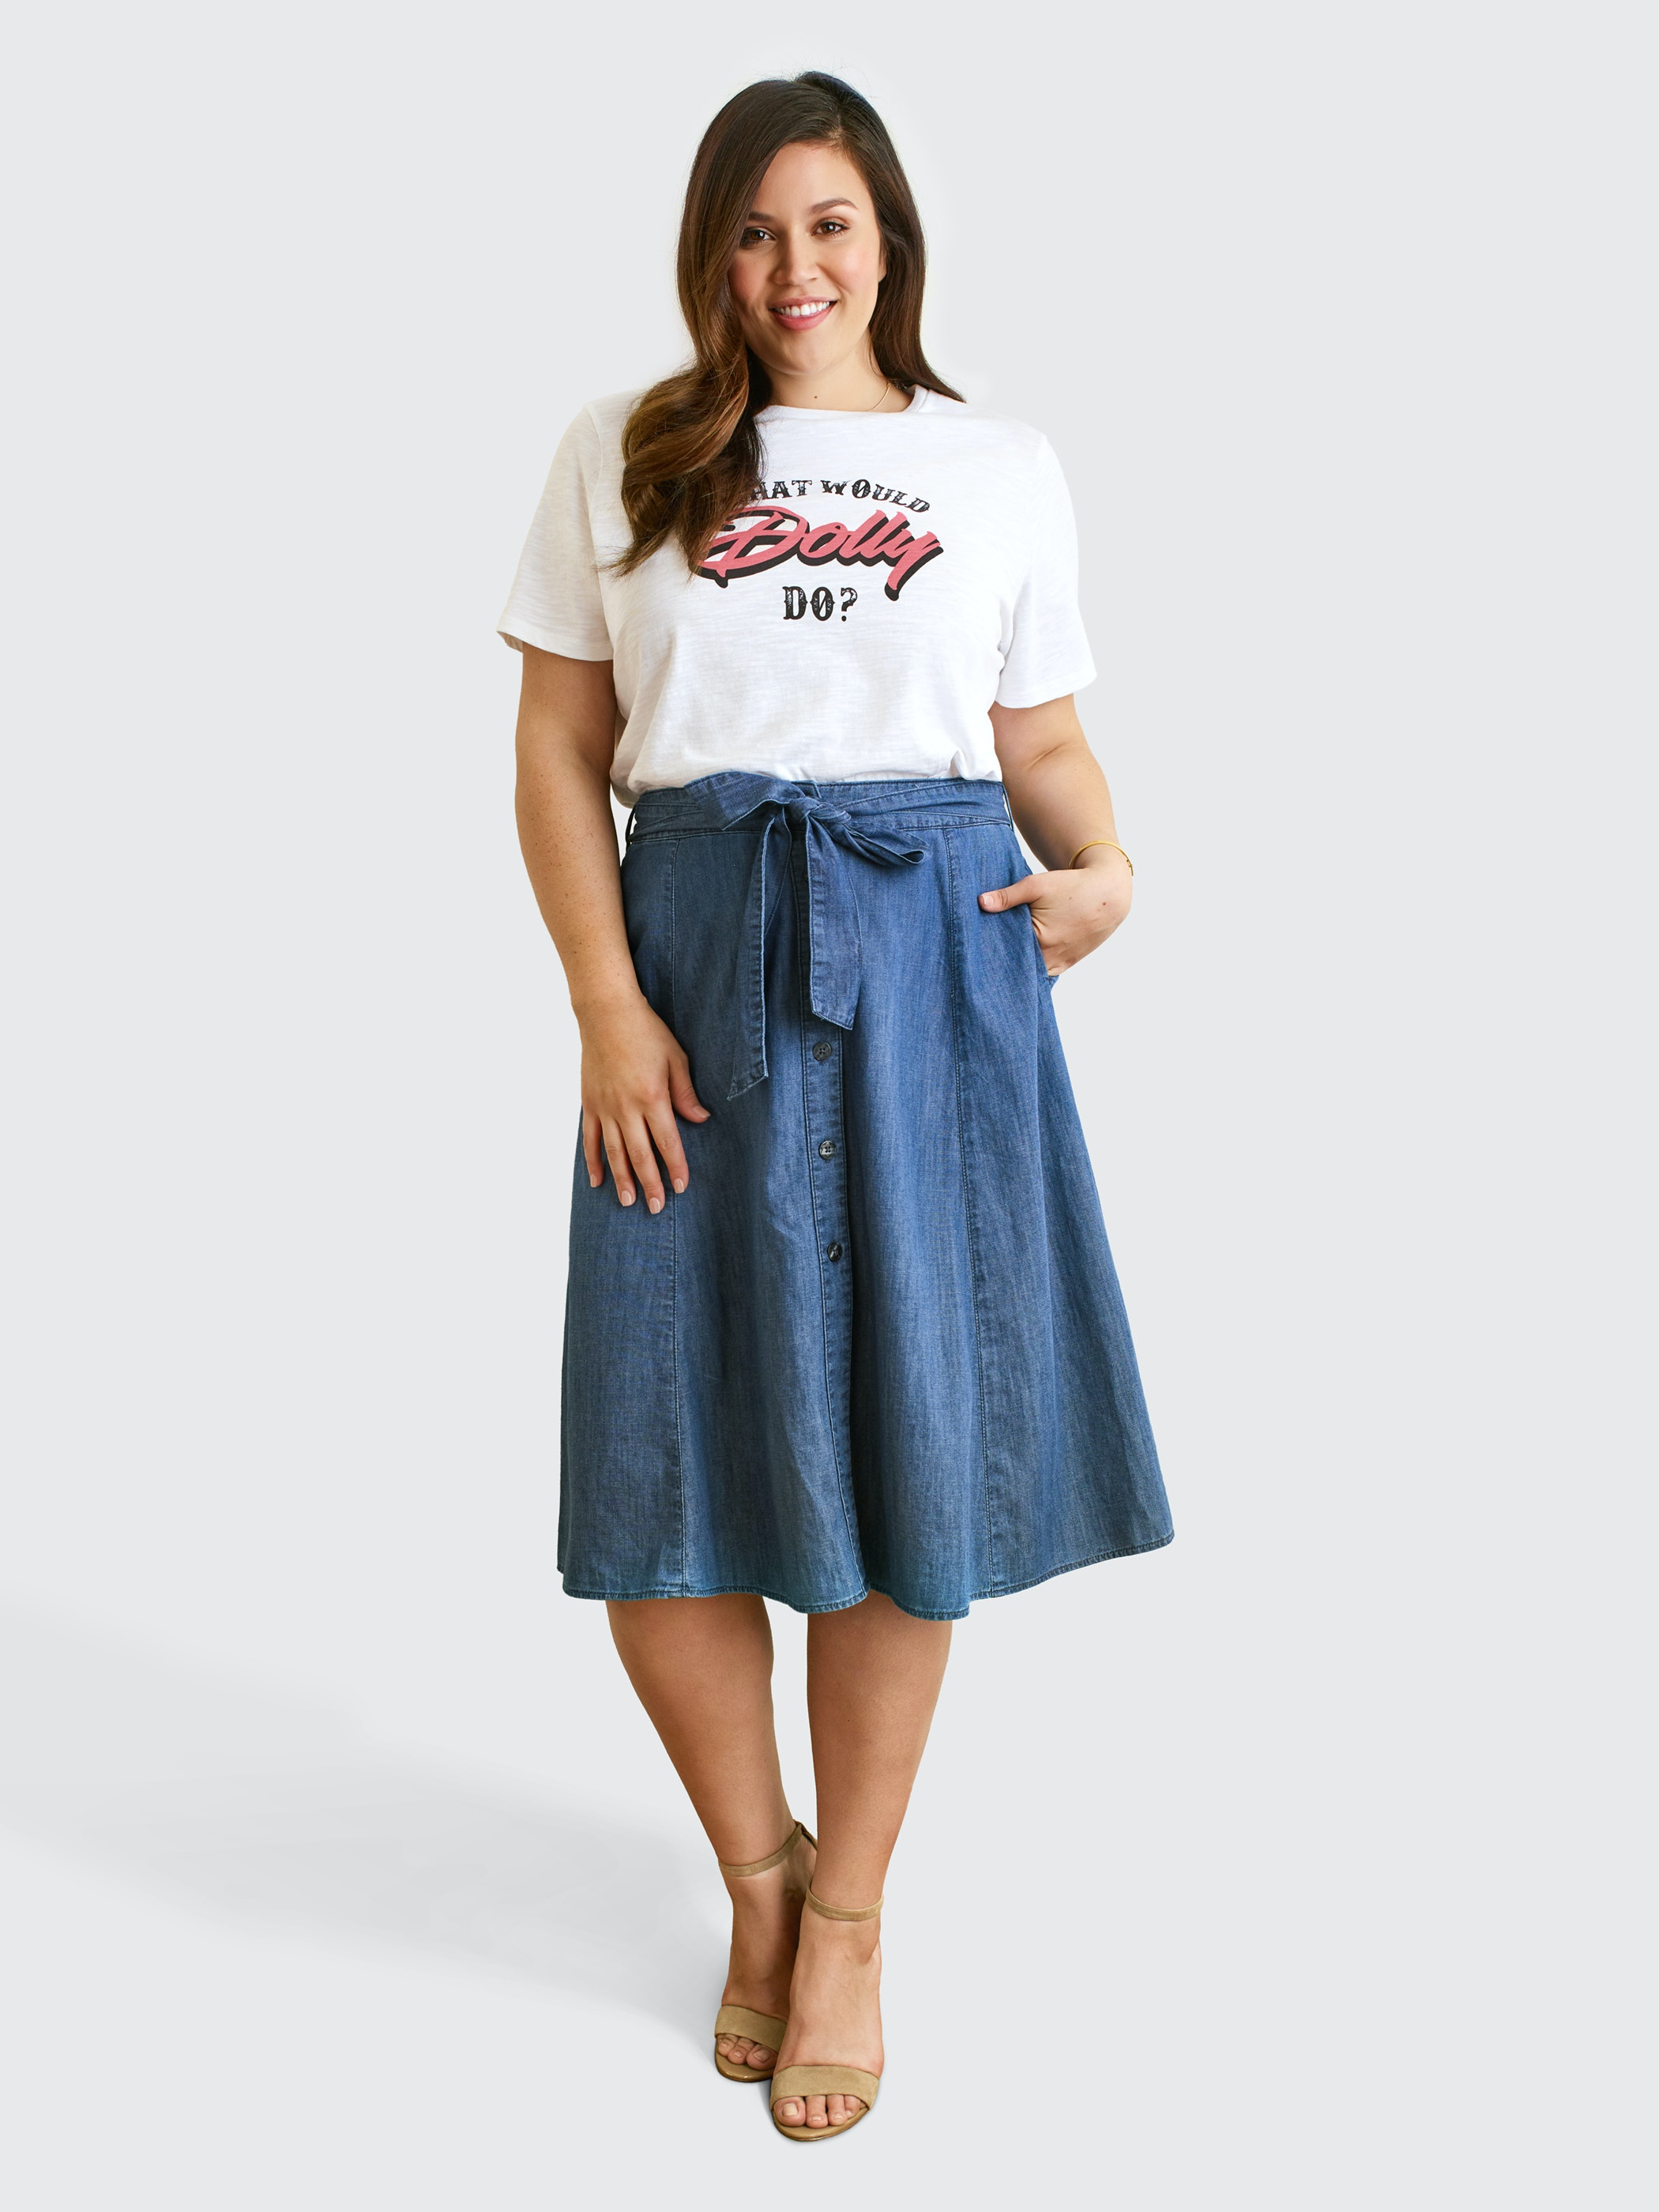 4ba93f0baee Reese Witherspoon s Draper James Clothing Line Now Carries Up To Size 24